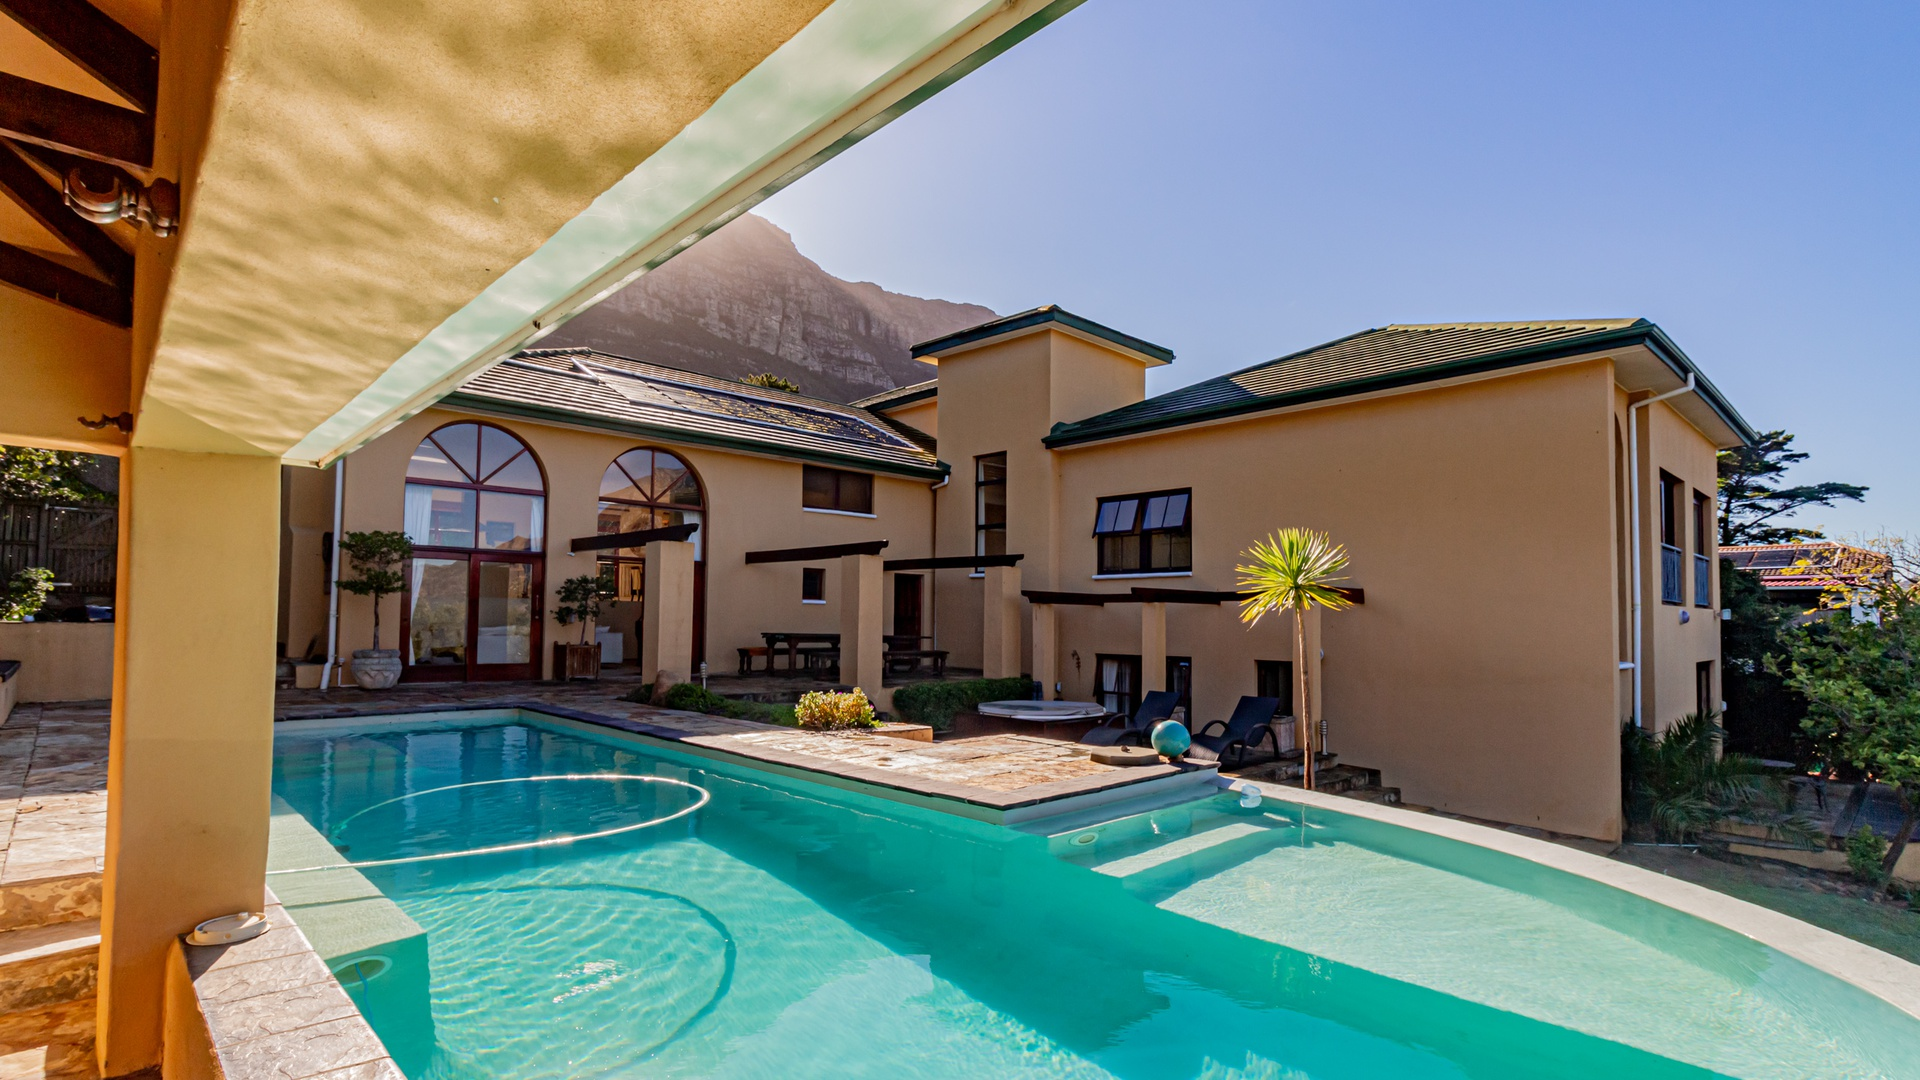 House in Hout Bay - Pool area